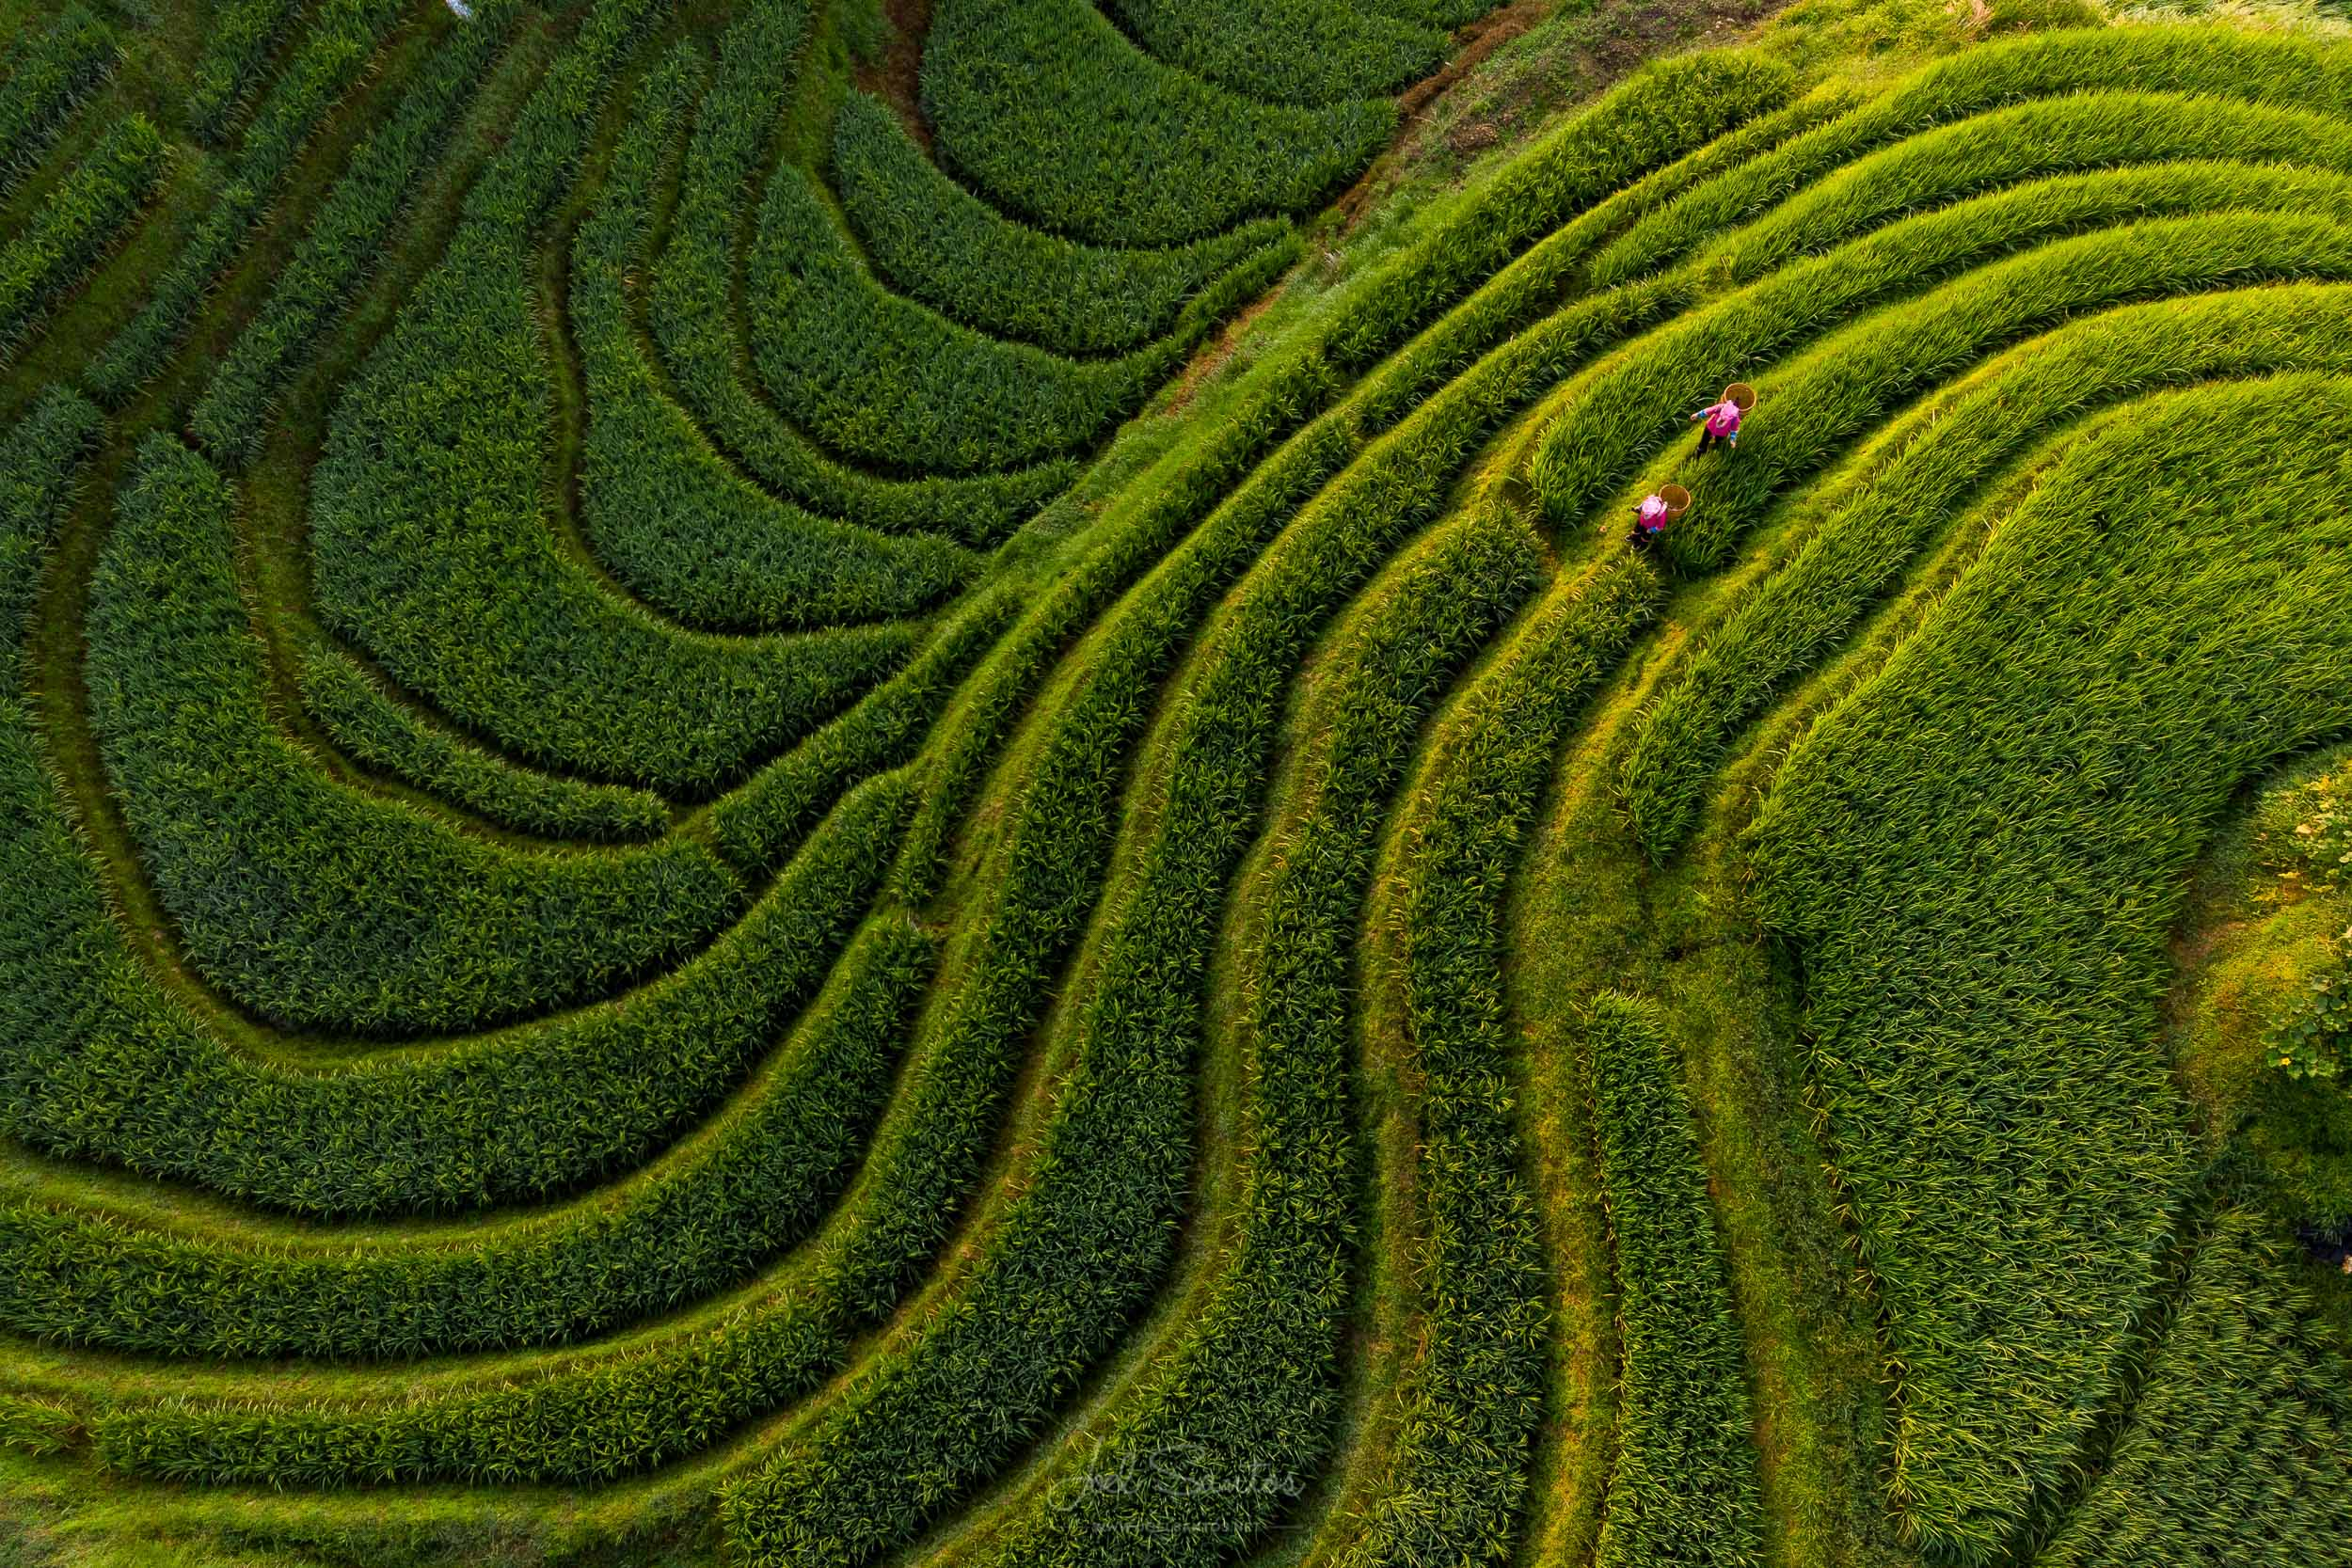 Longsheng rice terraces and farmers, Guangxi Zhuang, China